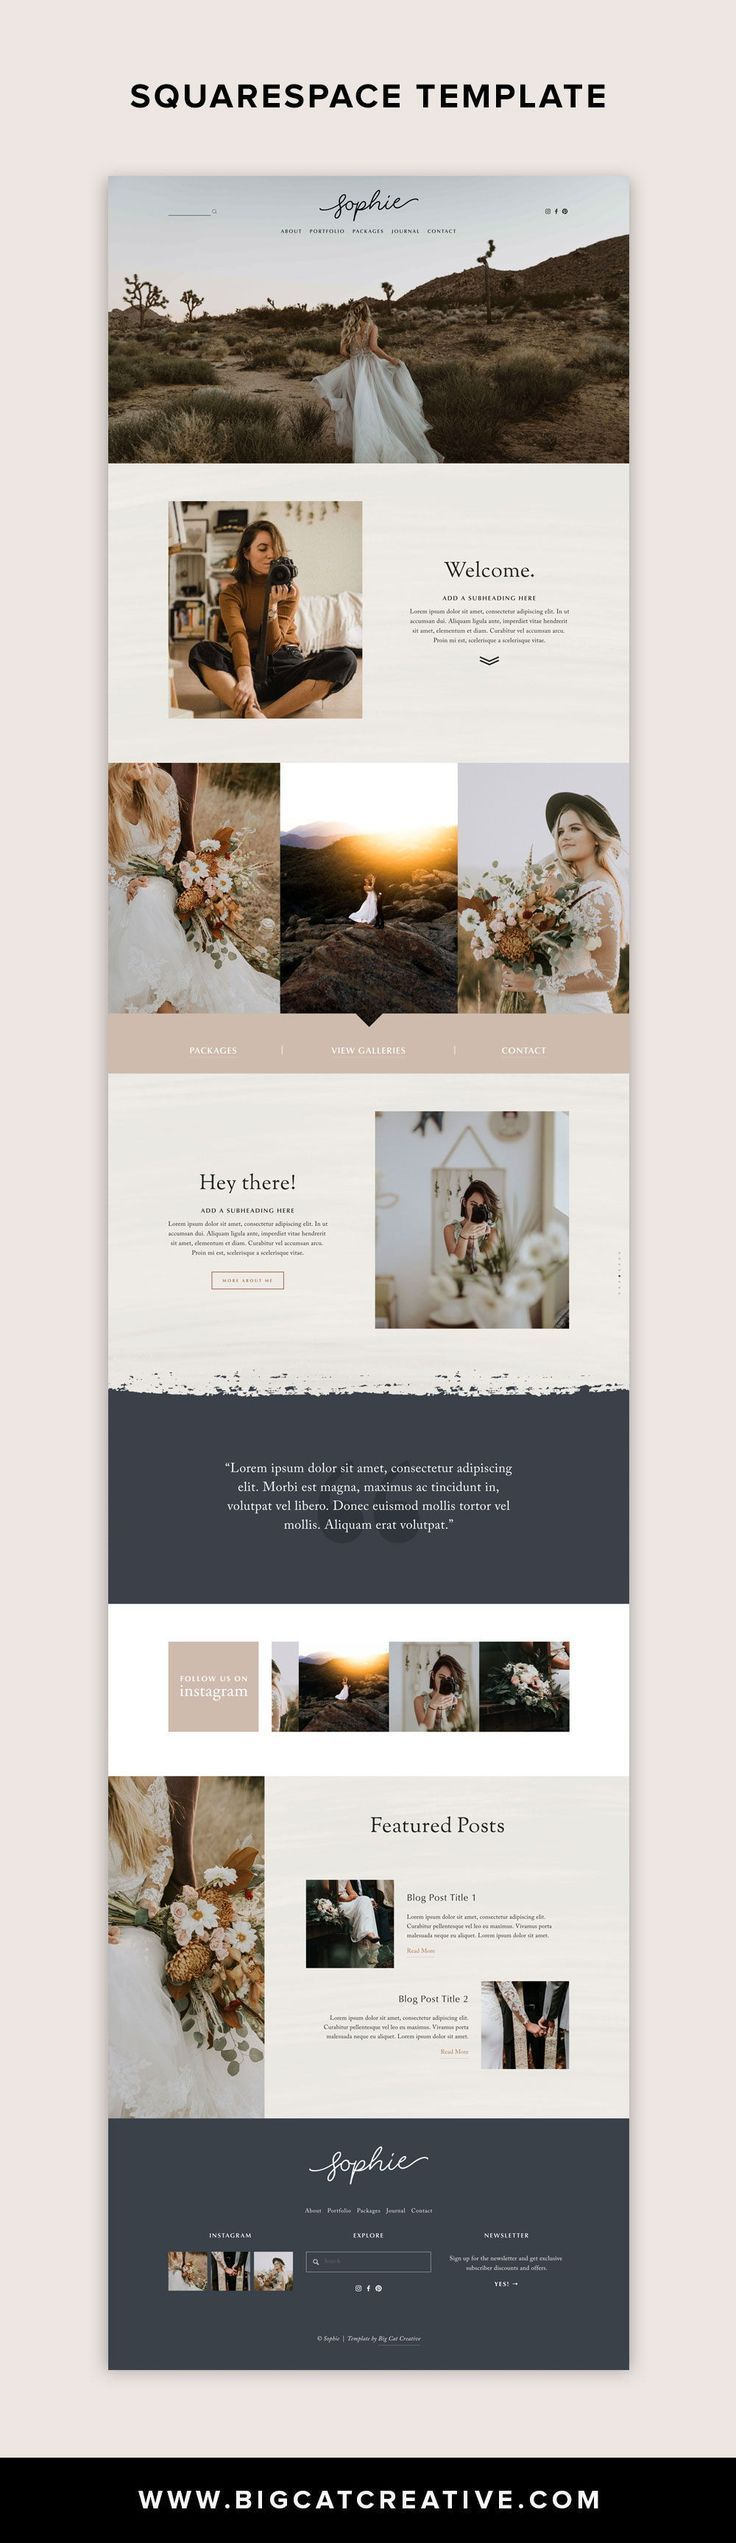 Squarespace Website Template Kit SOPHIE Create your